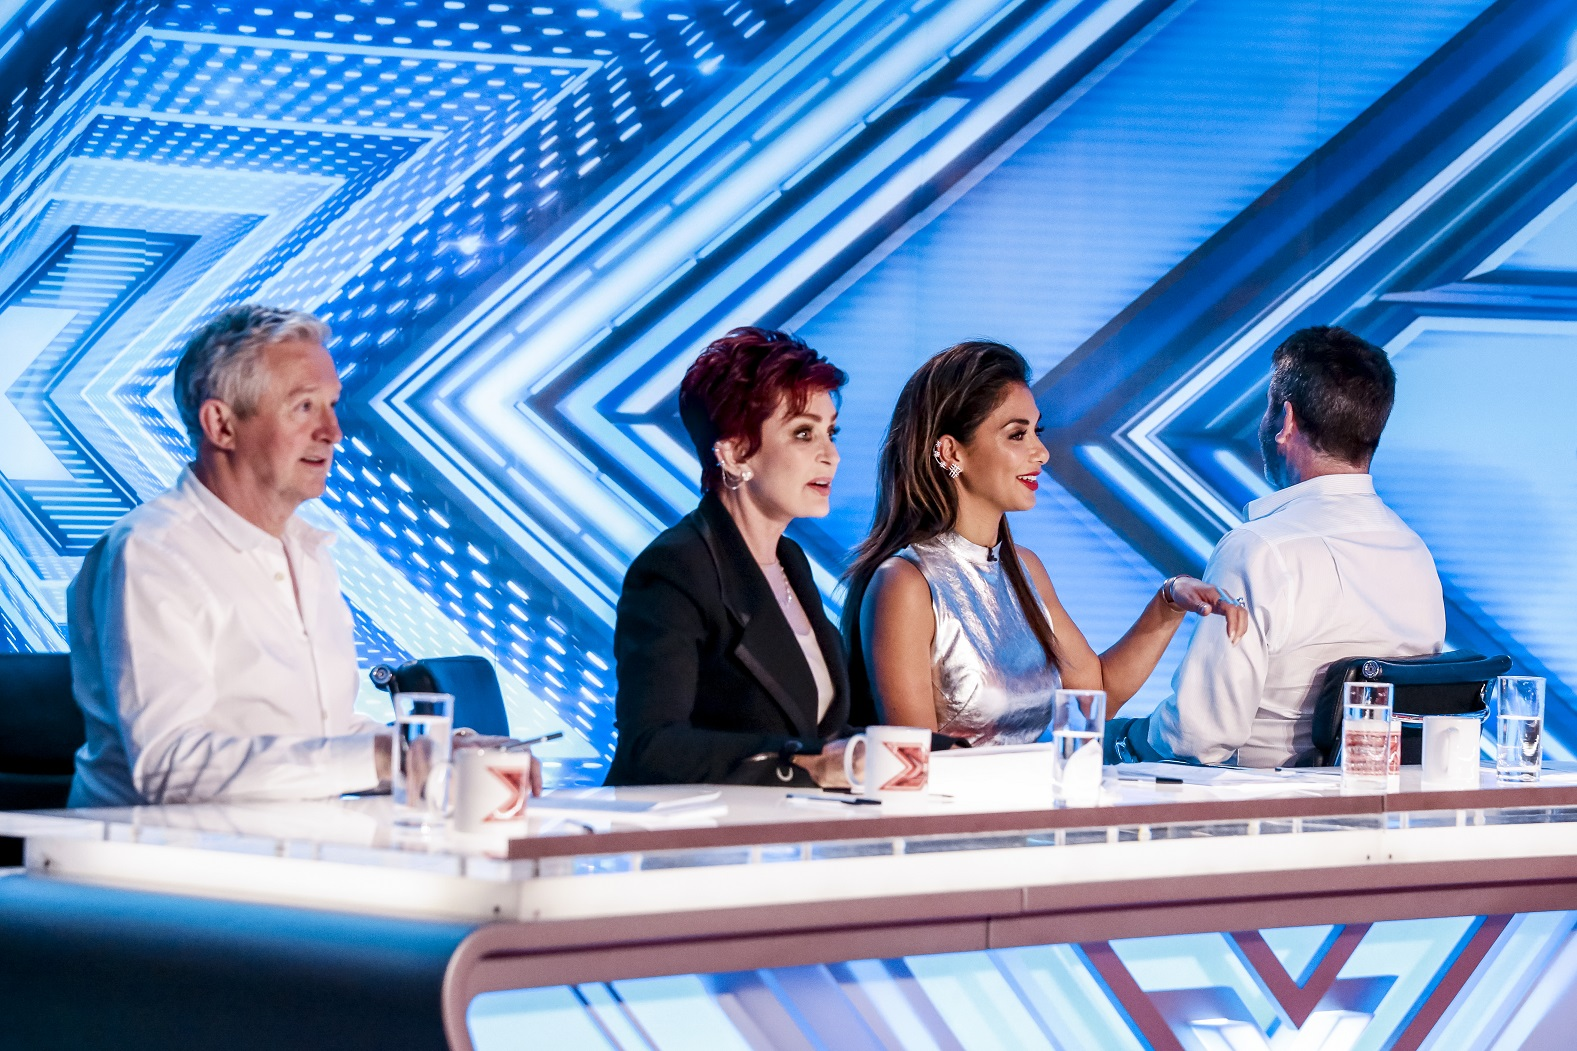 The X Factor 2016: Sunday night auditions saw familiar faces come back for more